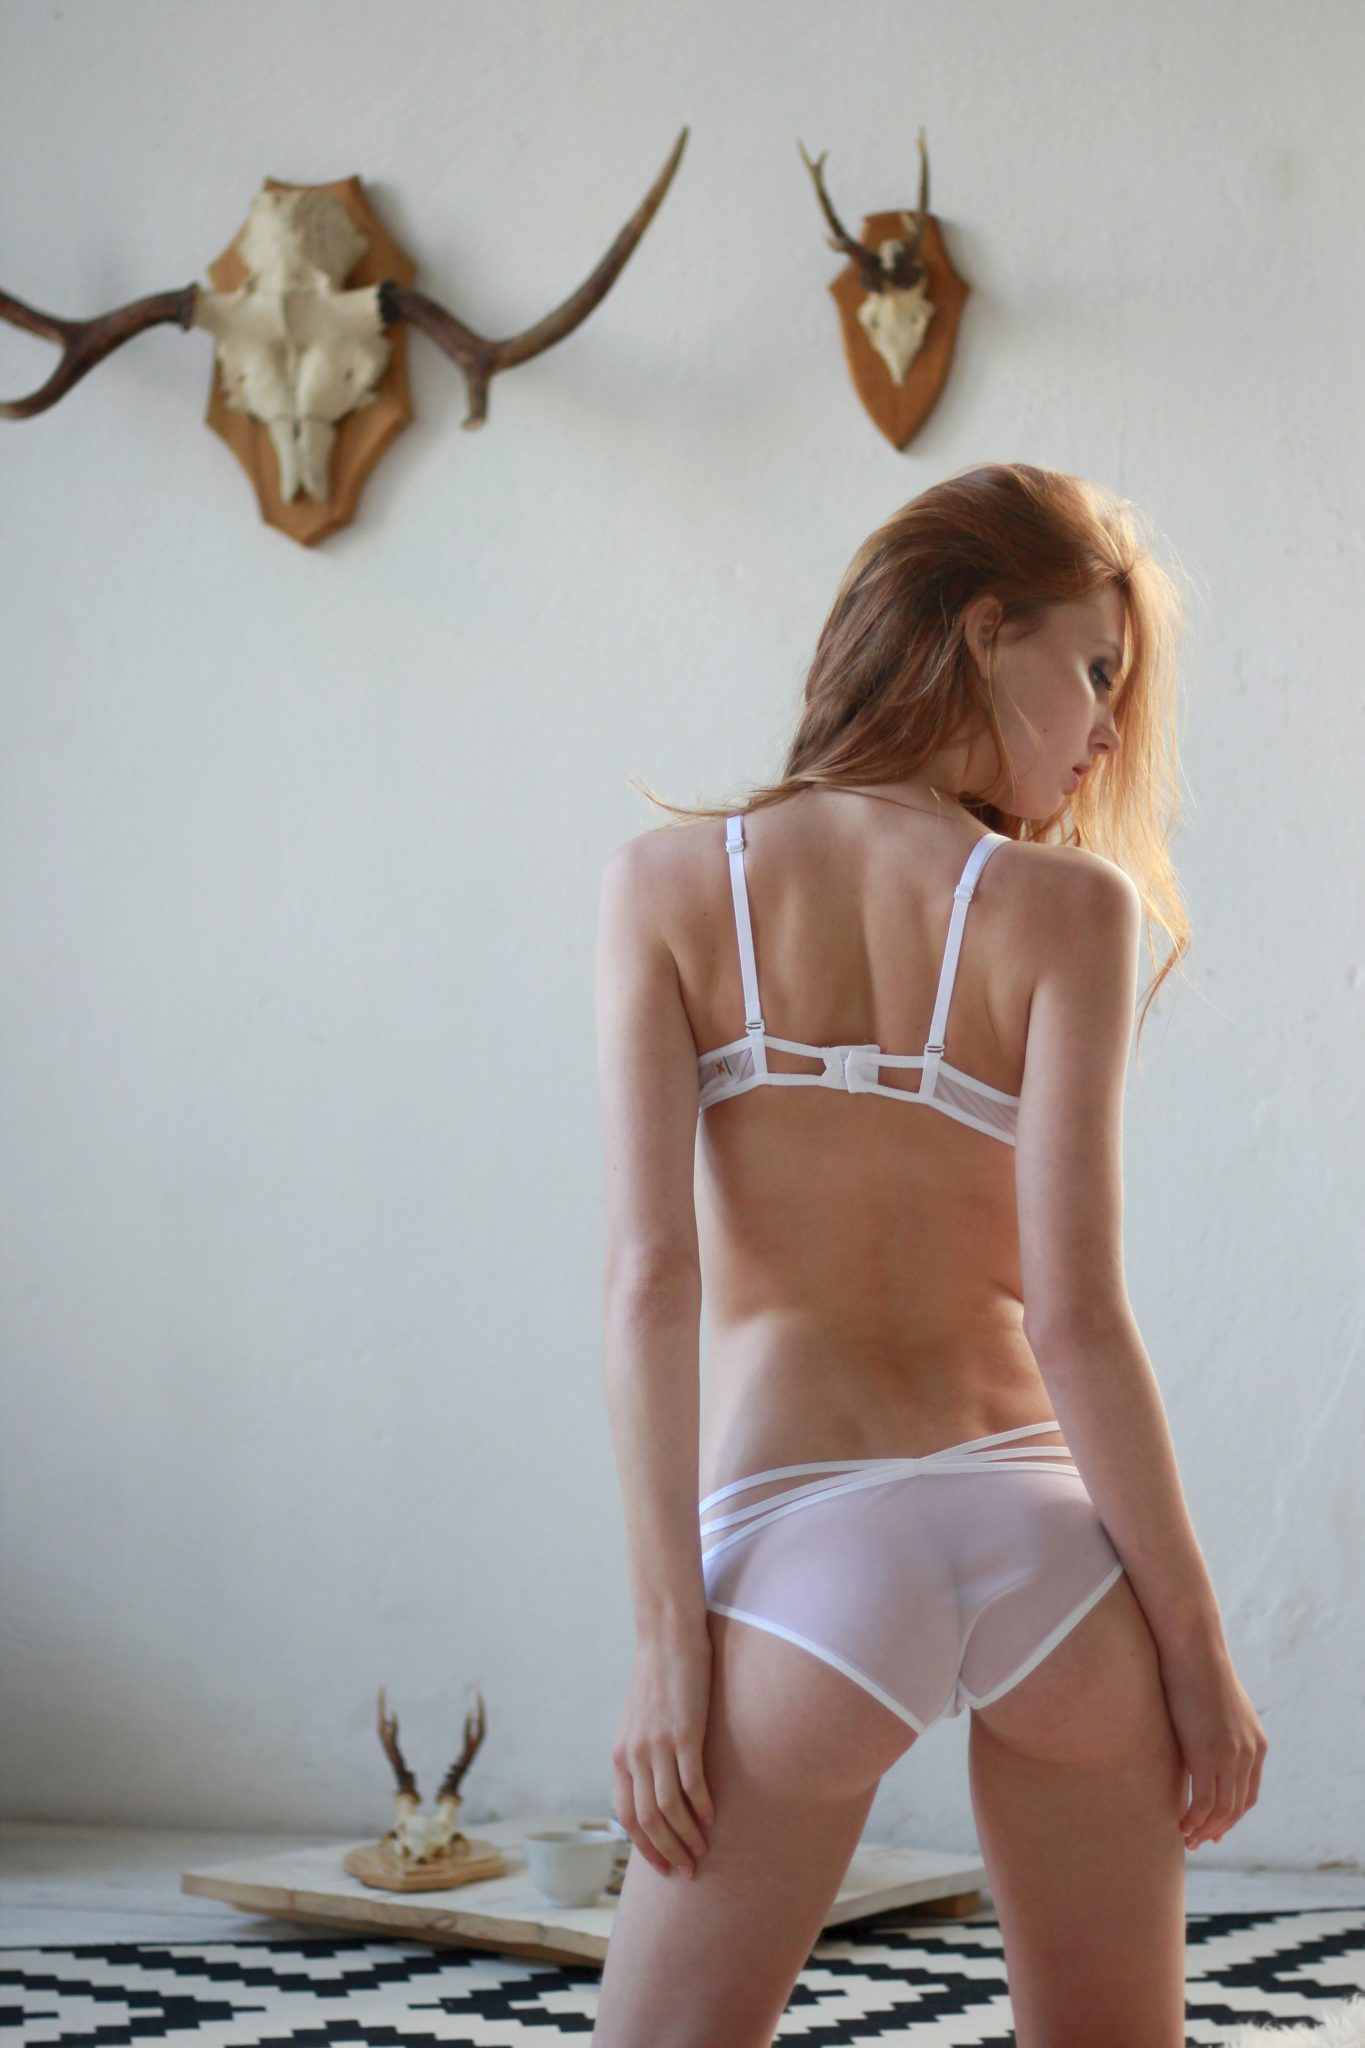 a14aedec26 White Mesh double cross bralette by Flash you and me Lingerie